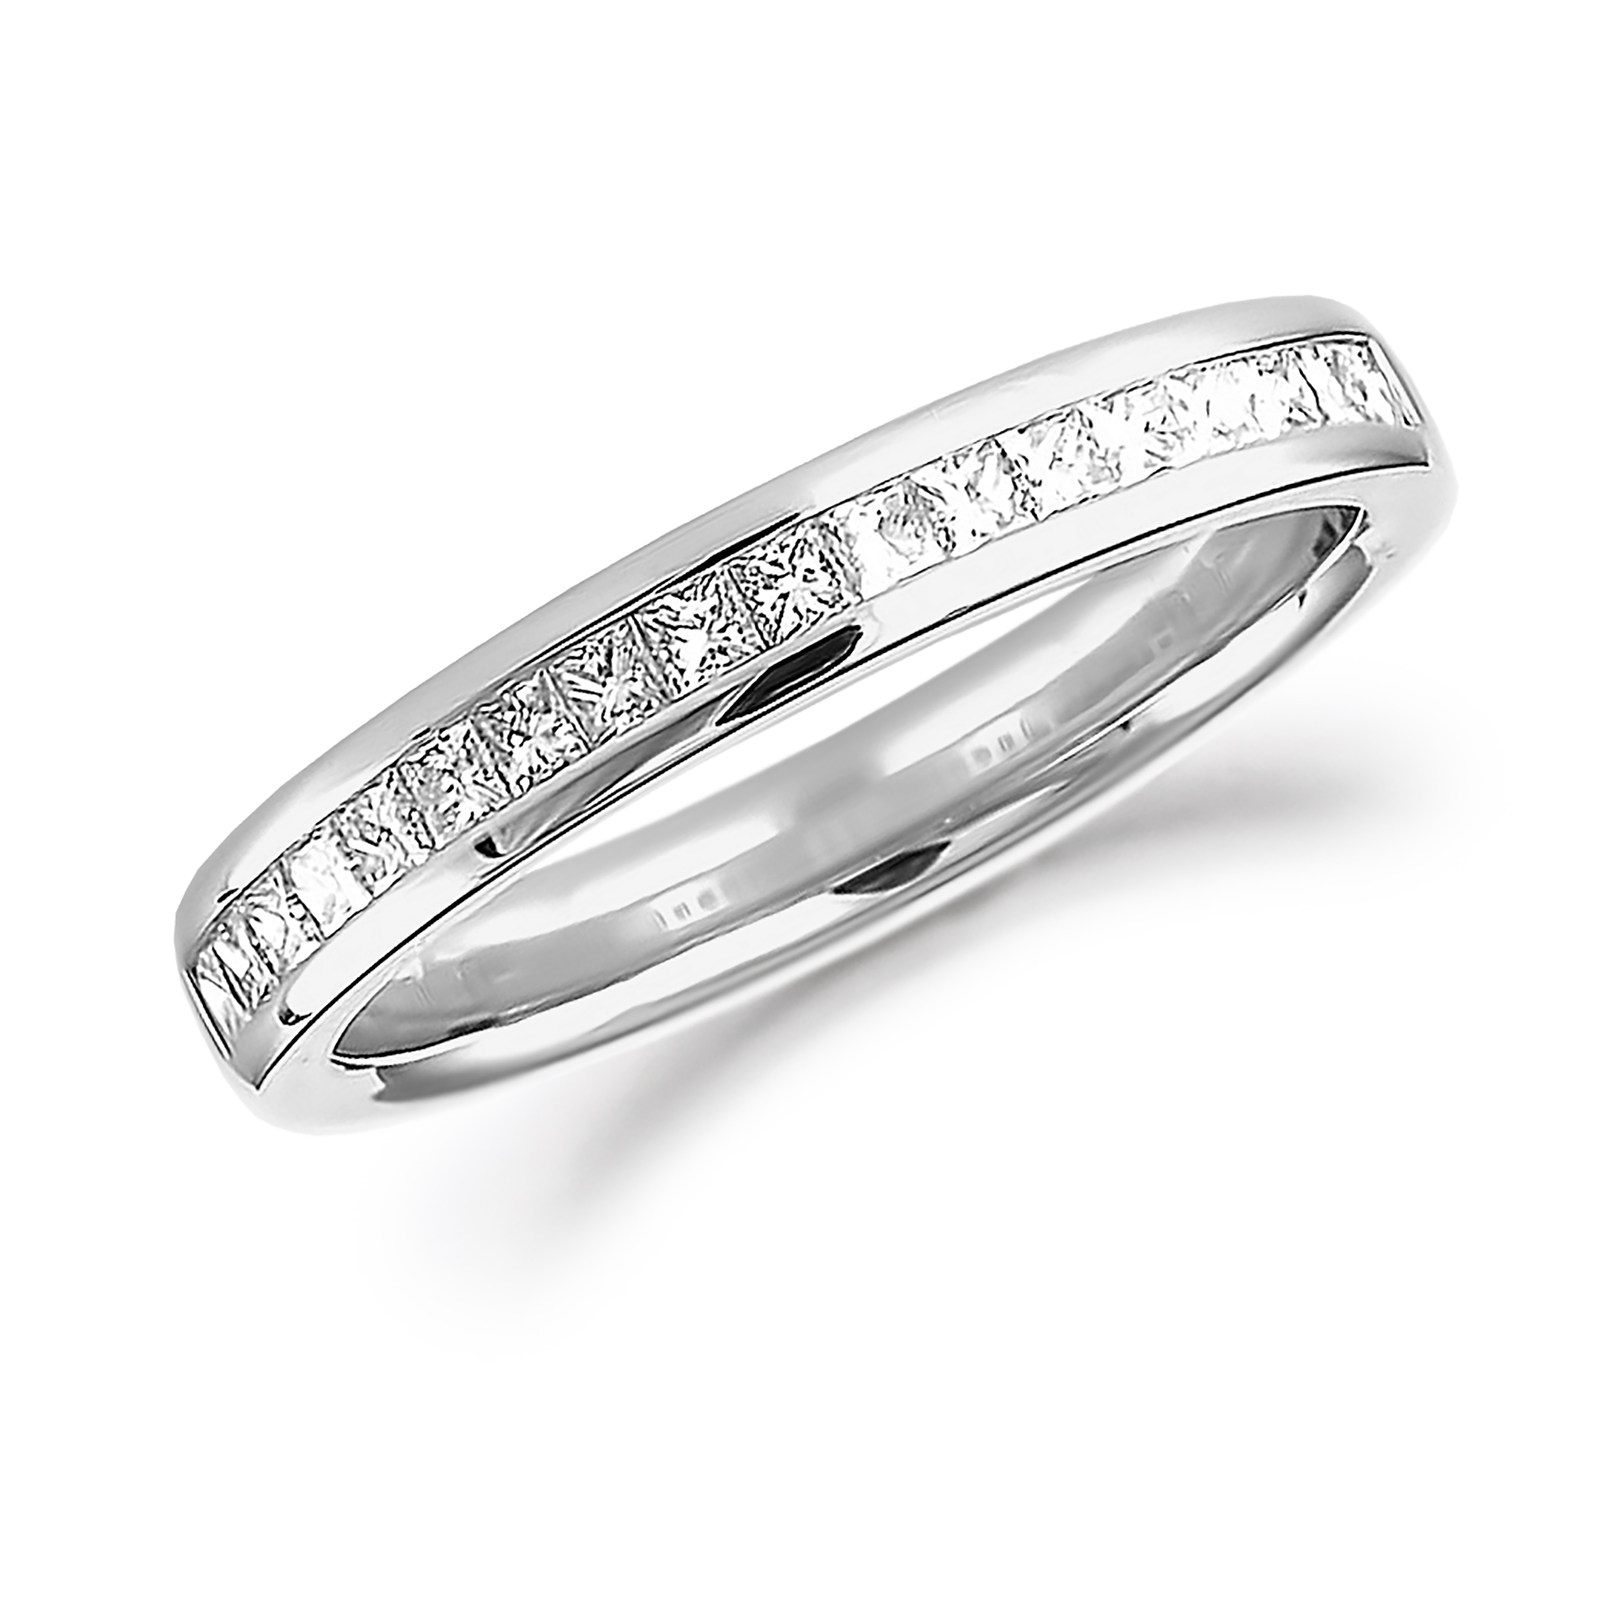 blaze light a cut ring princess diamonds shop of eternity bands with diamond engagement center black set and band frame